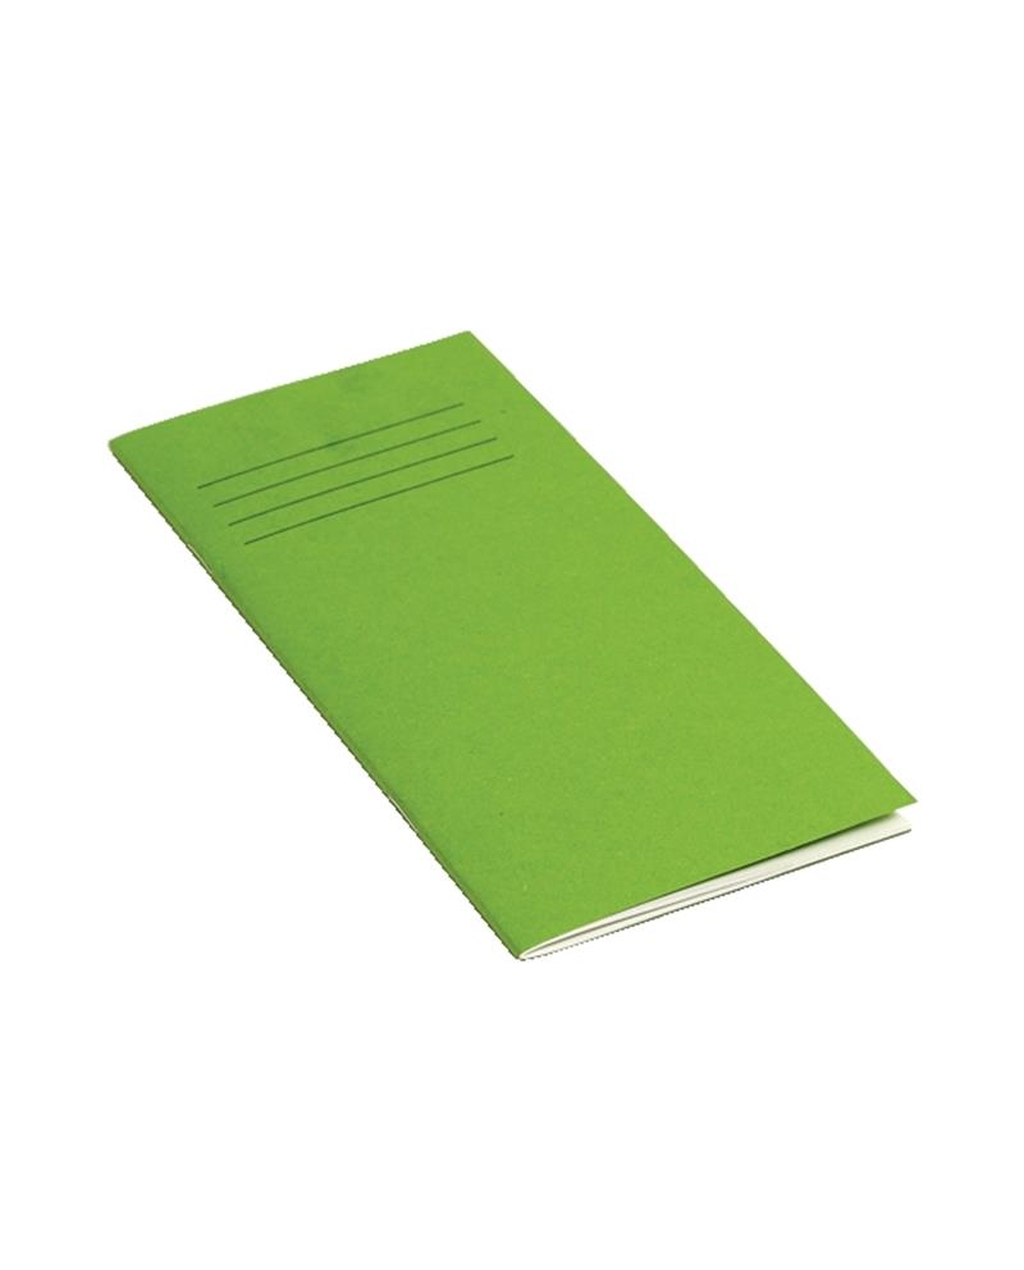 Exercise Book 8 x 4 (203 x 102mm) Light Green Cover Plain - No Ruling 32 Page